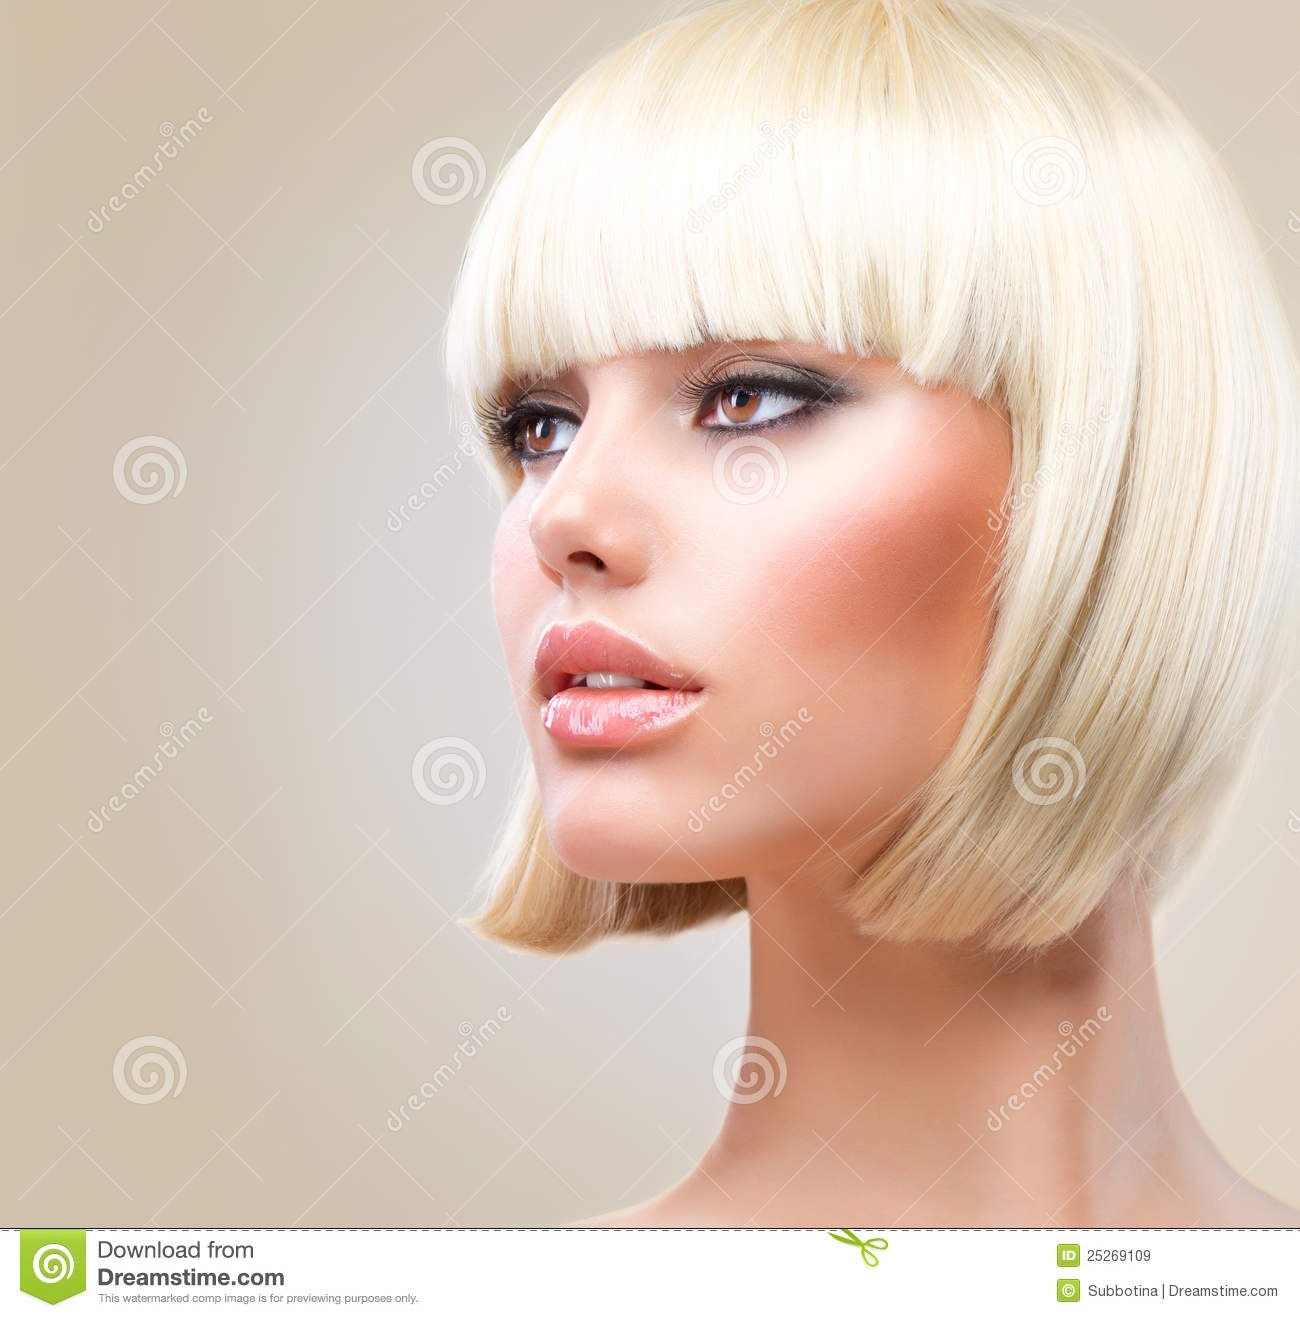 Model with short Blond hair